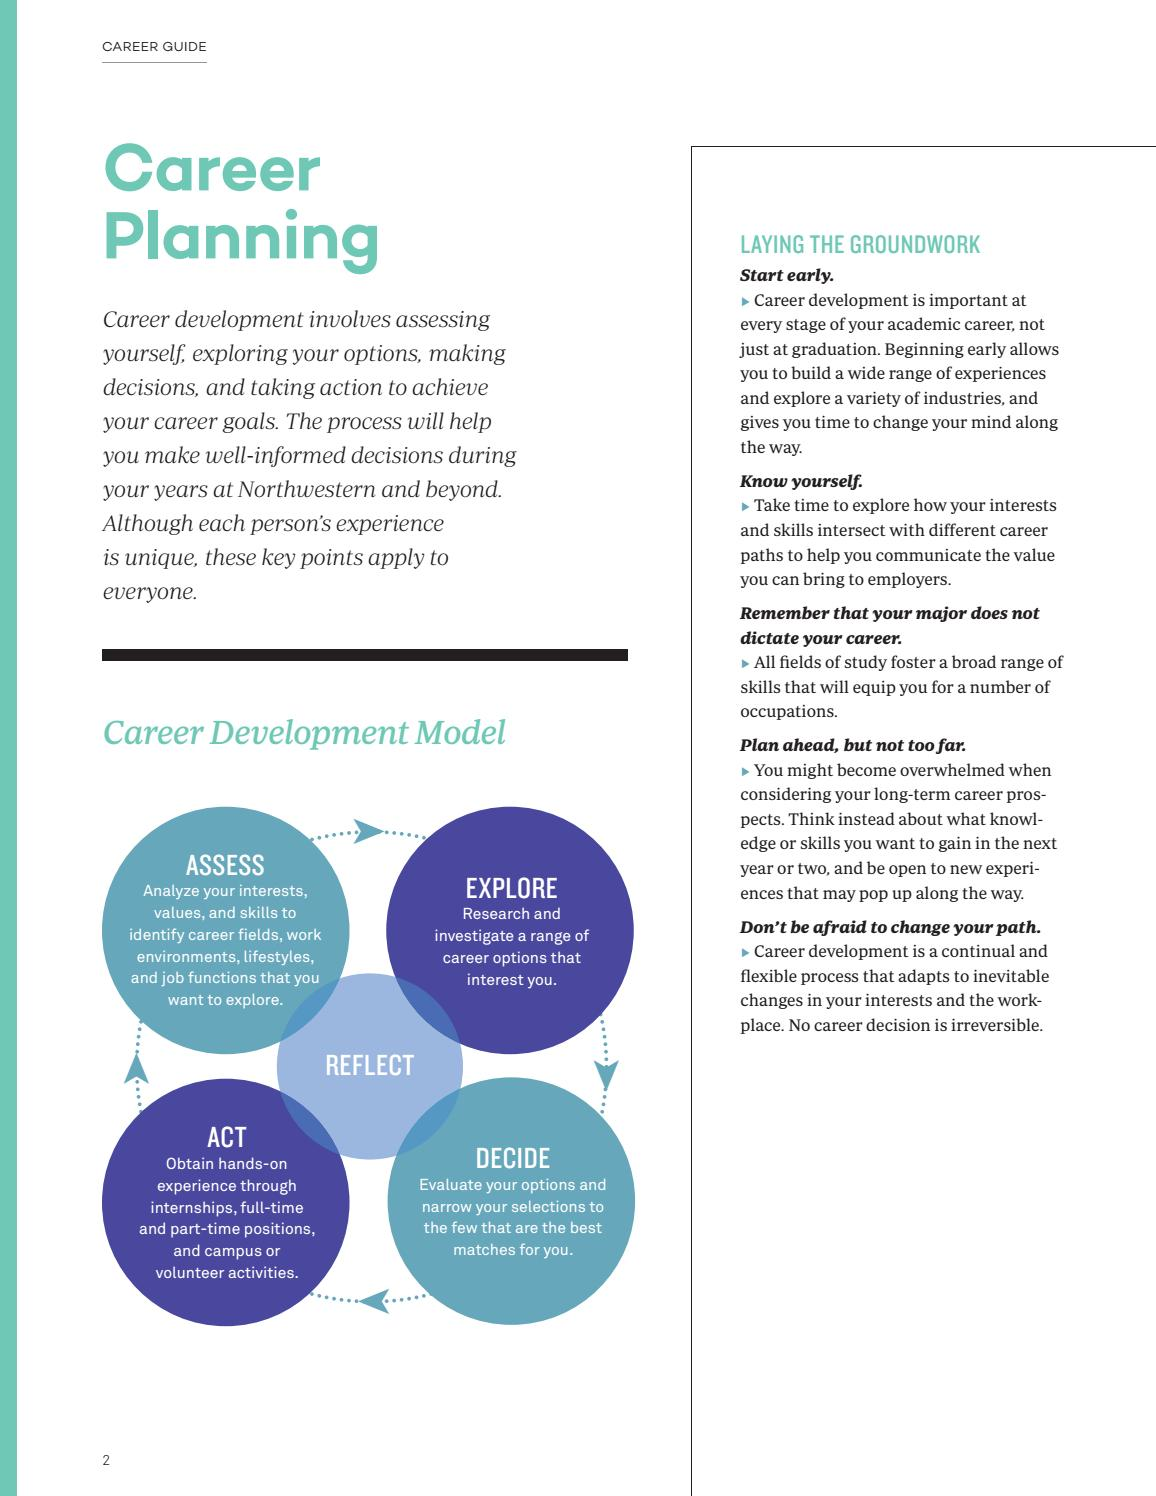 nca career guide 2016 18 by northwestern career advancement page nca career guide 2016 18 by northwestern career advancement page 4 issuu